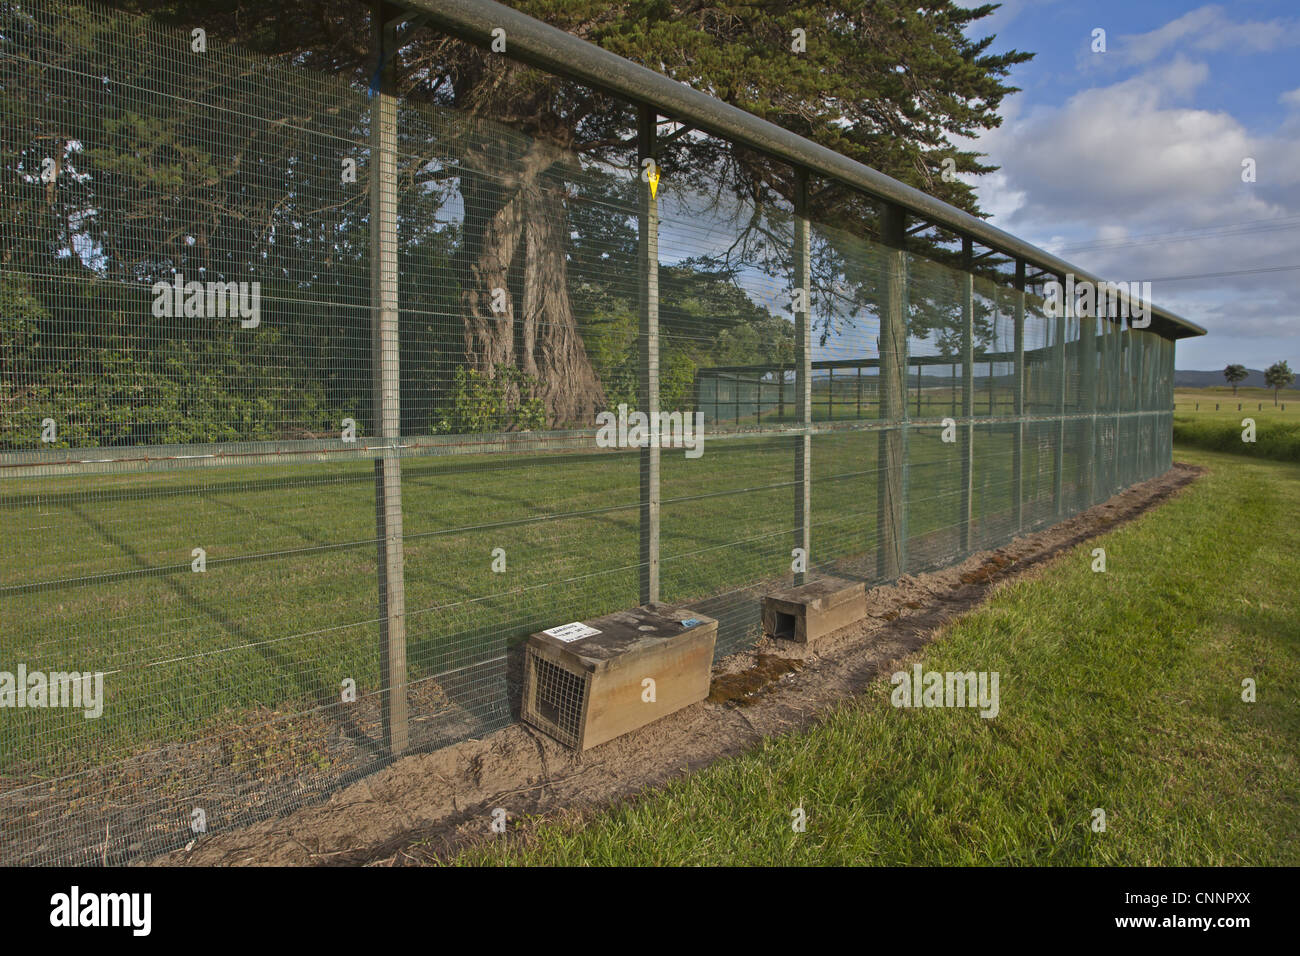 Anti-predator fence and traps, to exclude introduced predators from area, New Zealand, november - Stock Image